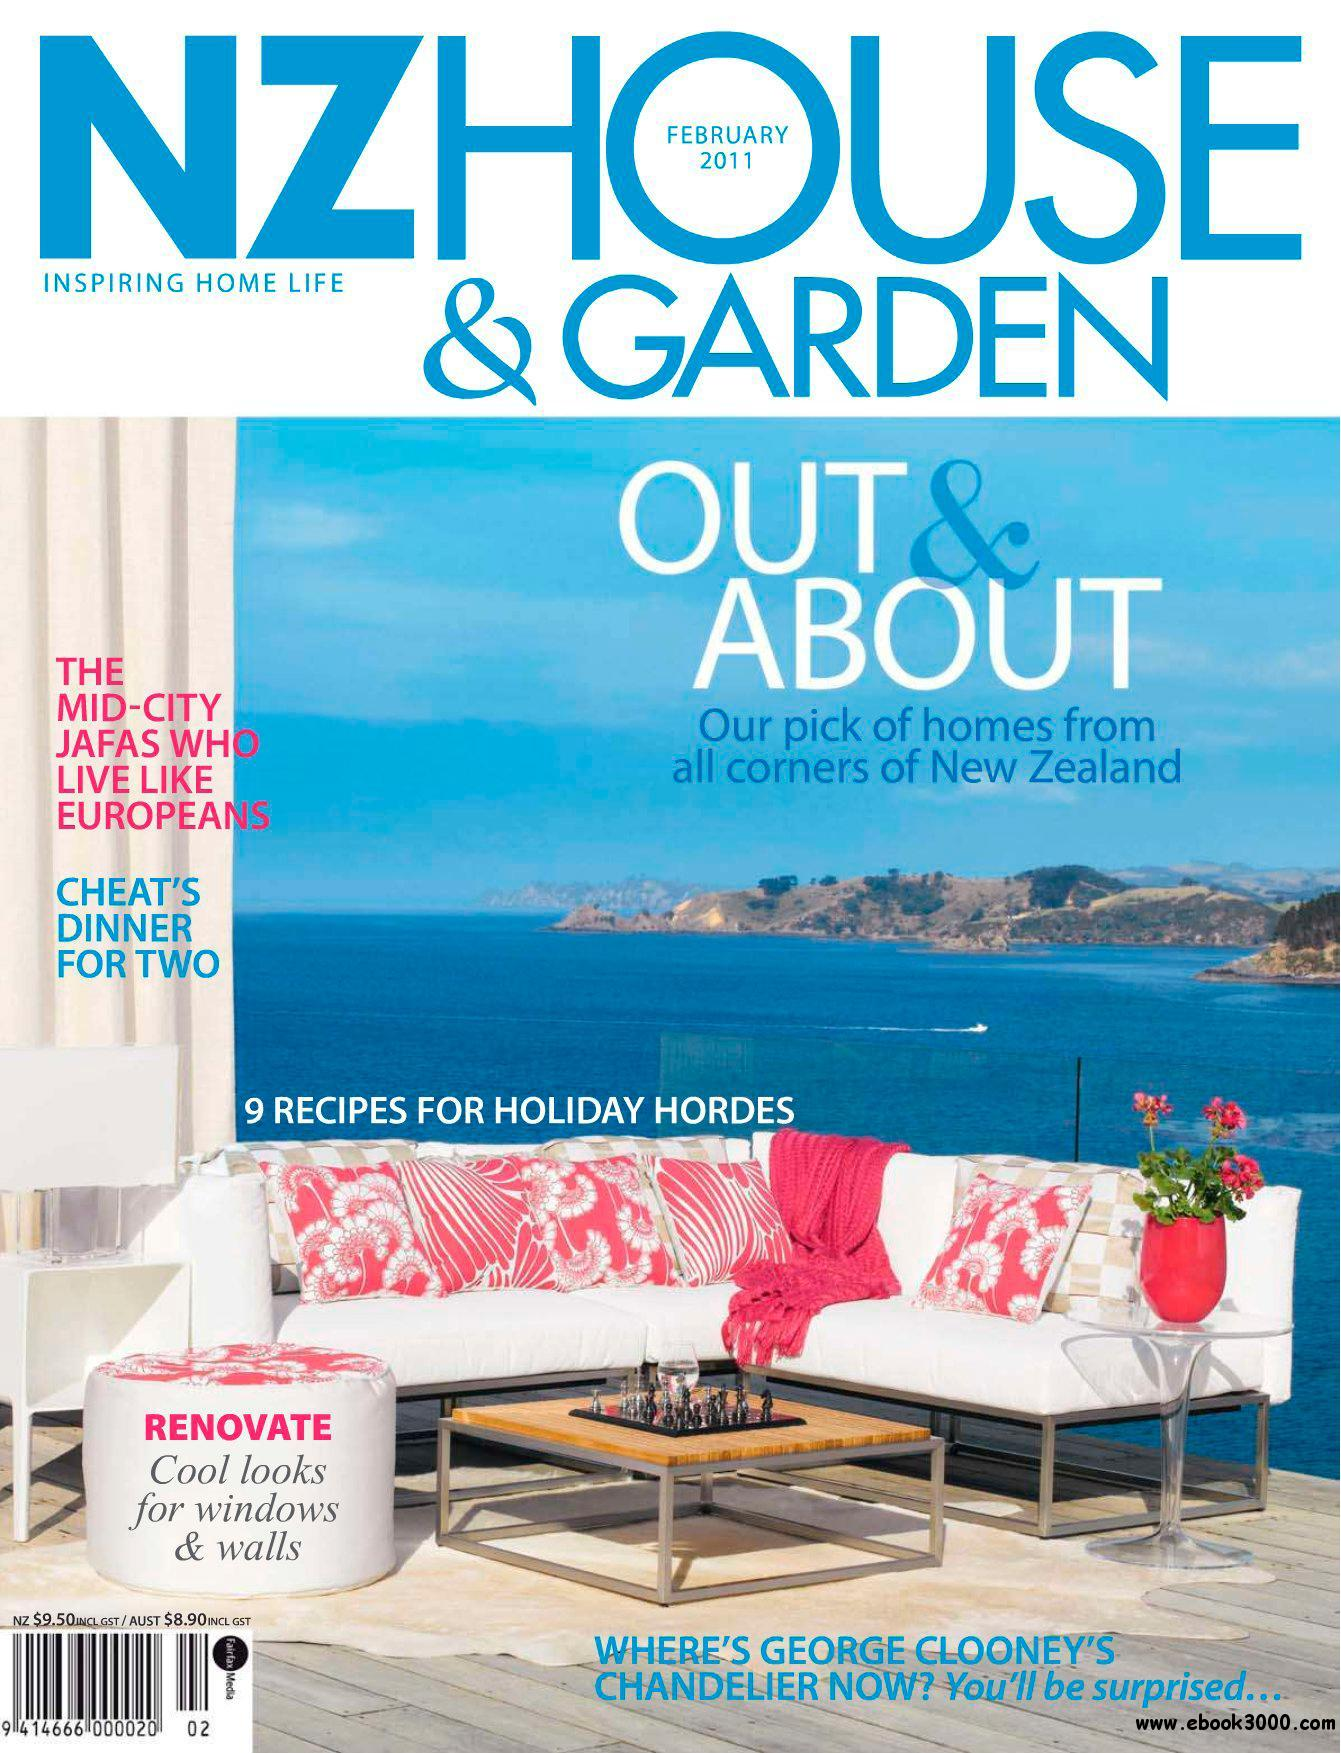 New Zealand House & Garden - February 2011 free download